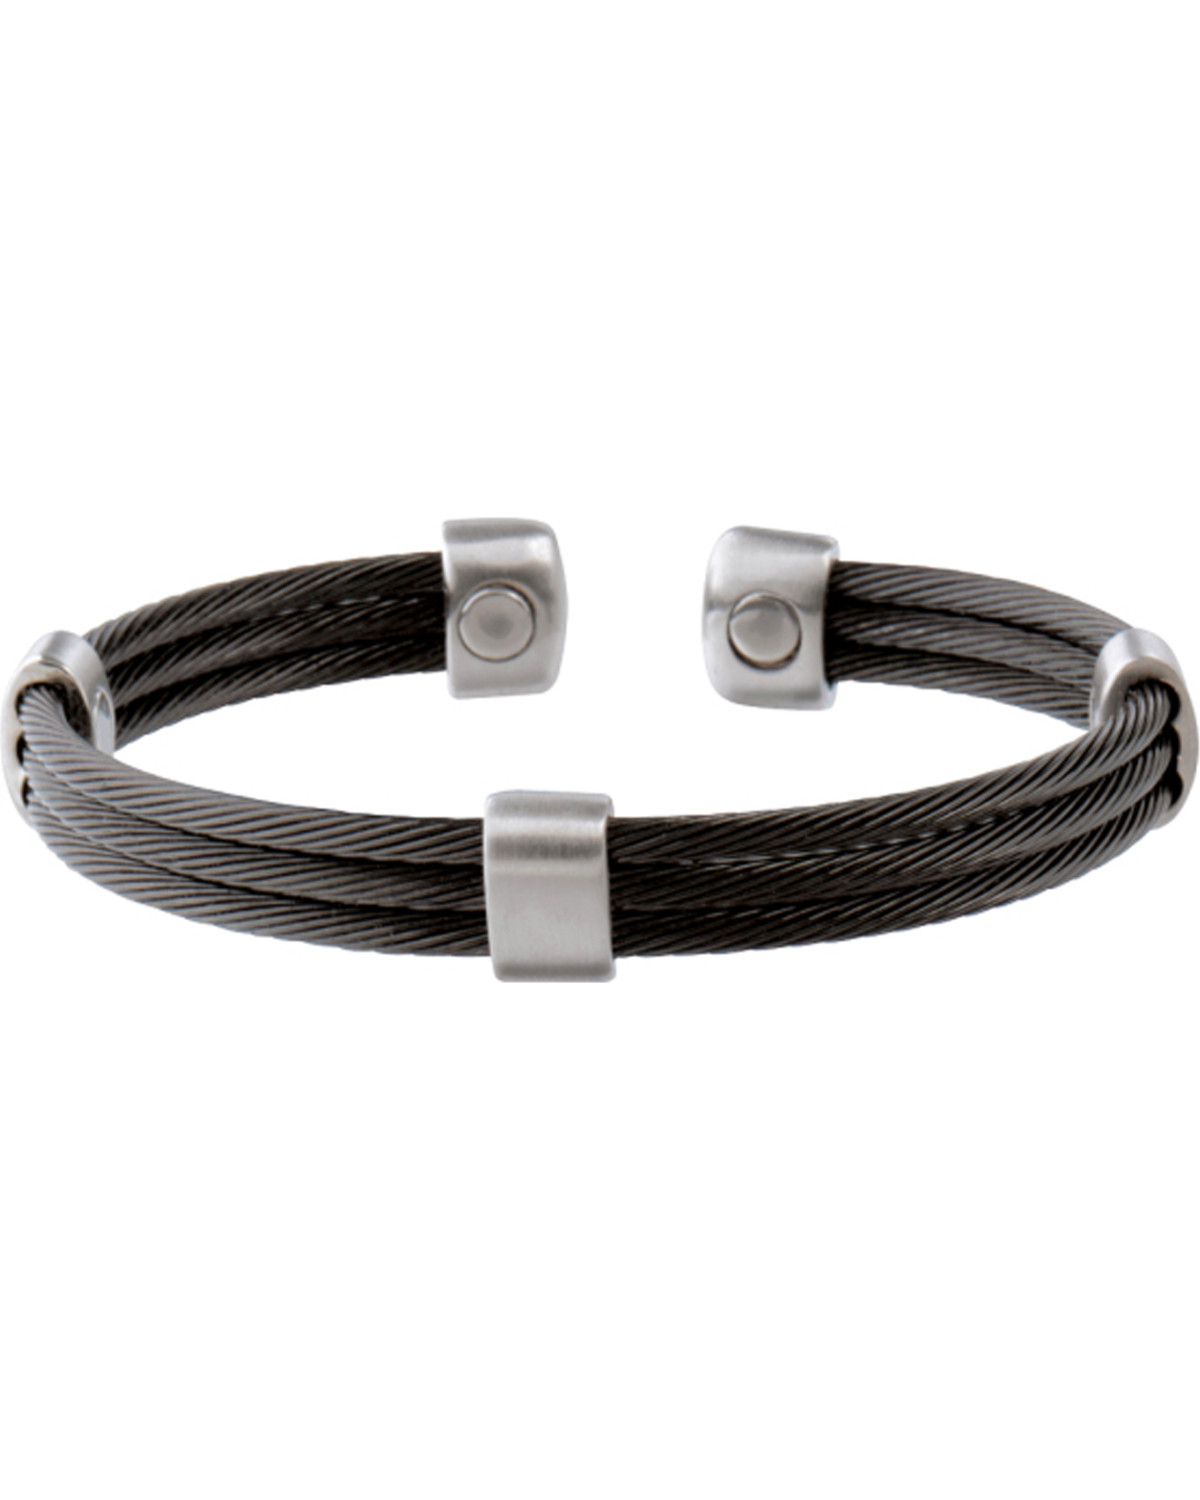 Sabona Trio Cable Black Satin Stainless Magnetic Wristband Two Tone